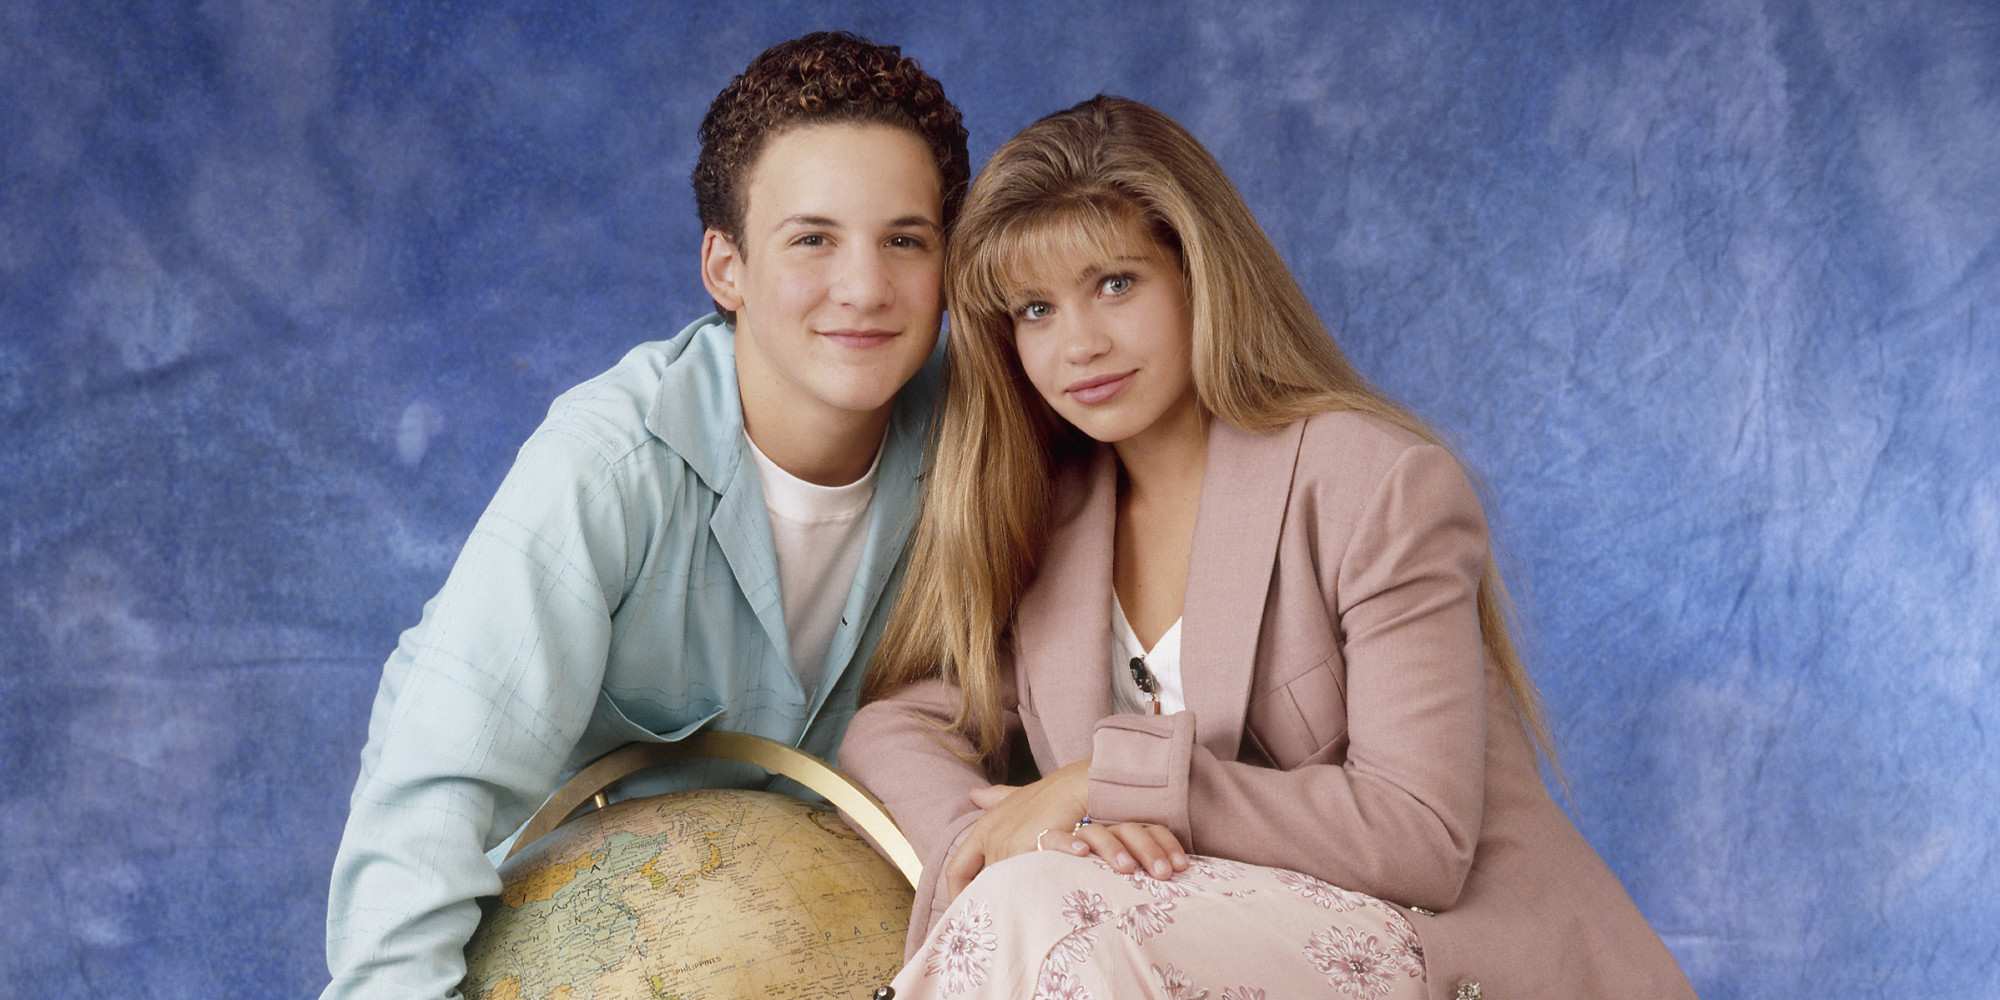 the hole cast of girl meets world Ben savage, actor of both 'boy meets world' and 'girl meets world,' shared a joint cast photo of the two series in preparation for the tv reunion.